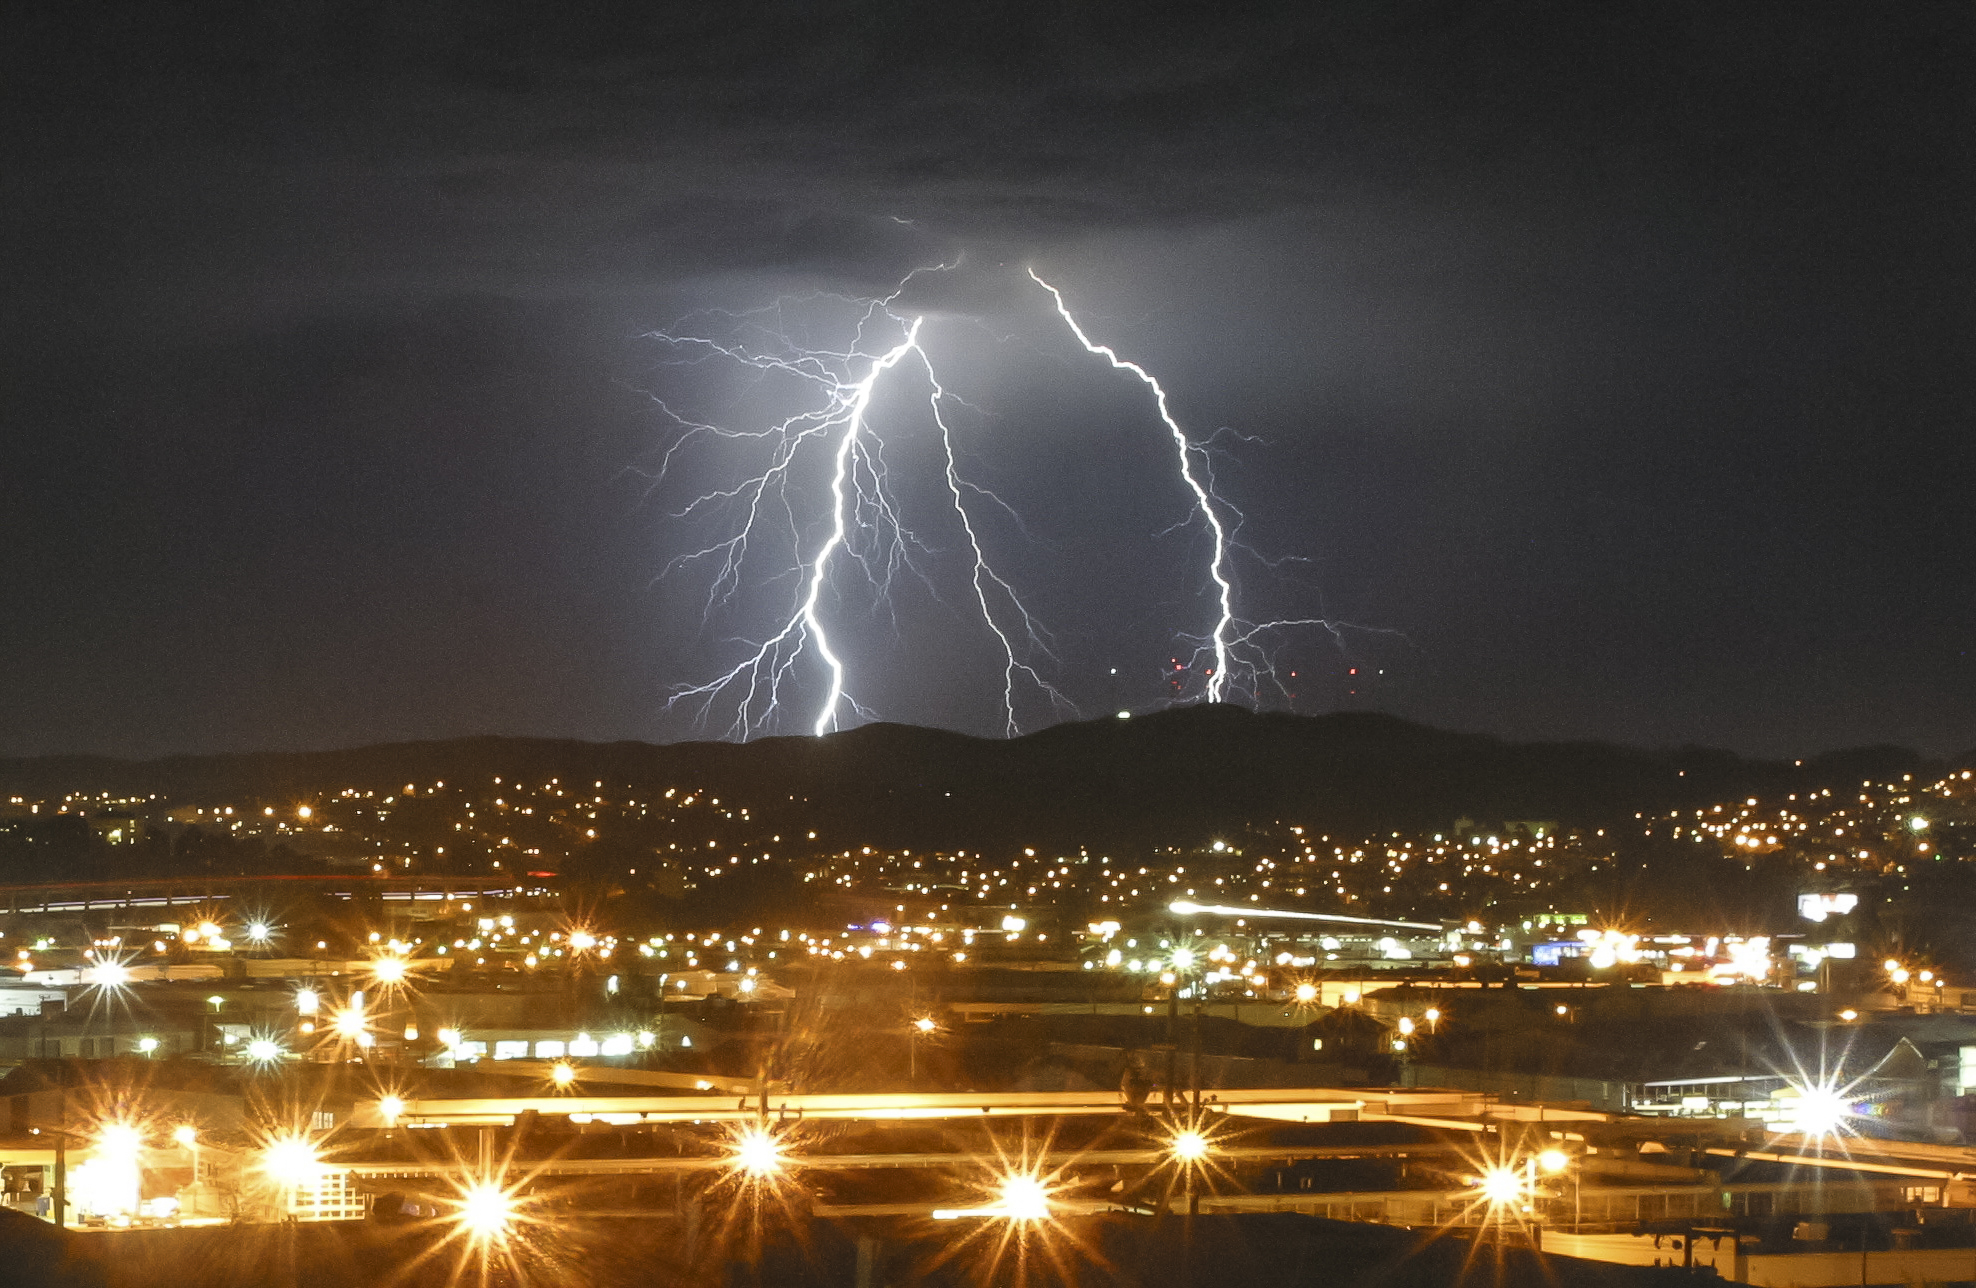 Rare lightning strikes the Bay Area in August, 2013, as seen from Potrero Hill in San Francisco.